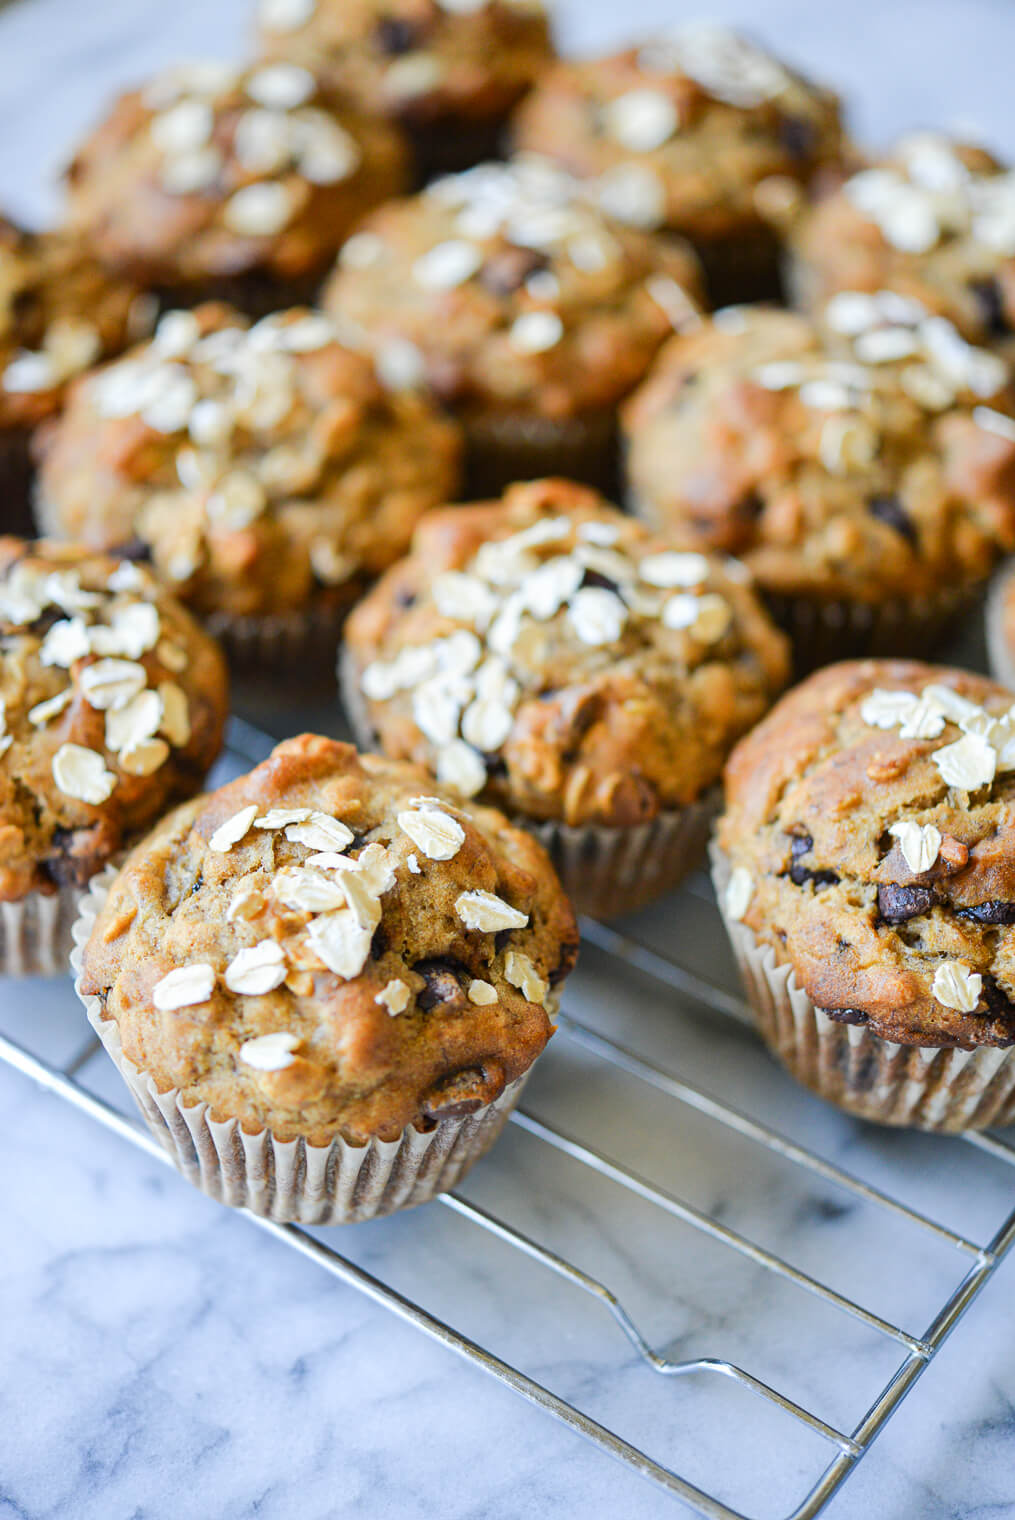 side angle view of chocolate chip banana oat muffins on a wire rack on a marble ssurface